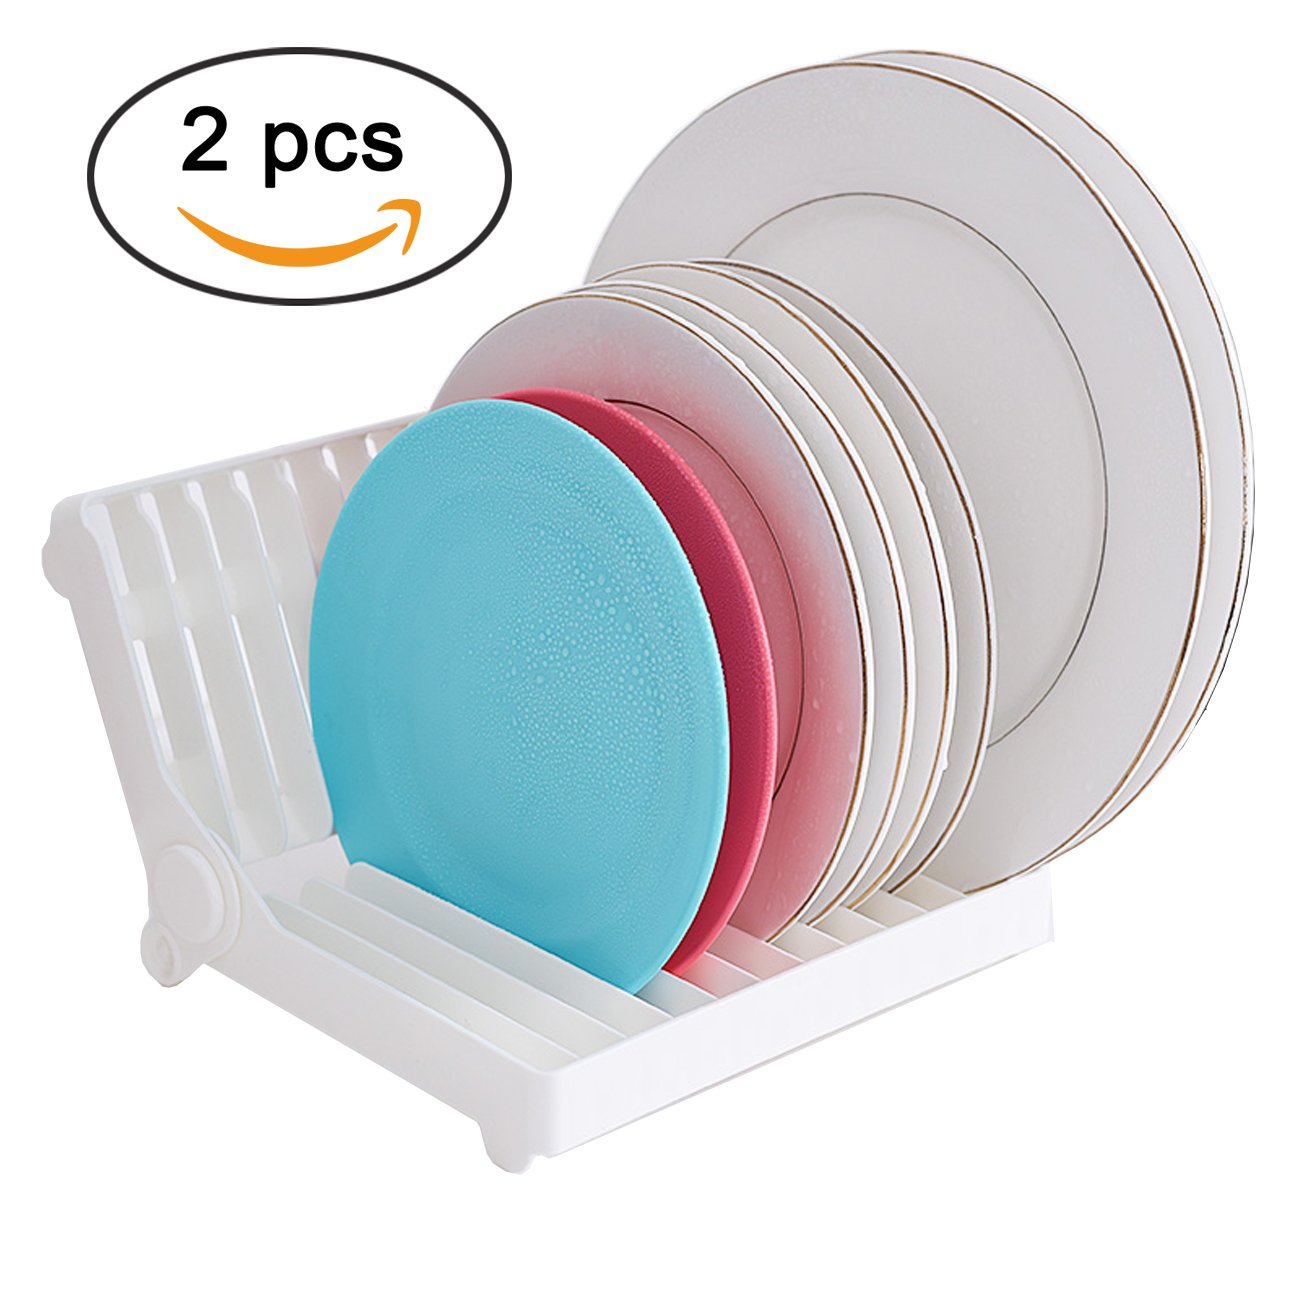 Ogrmar Plastic Foldable Space Saving Dish Drainer Rack for Kitchen Sink/ Compact Modern Fold Away Dish Dryer Rack Pack of 2 (White)